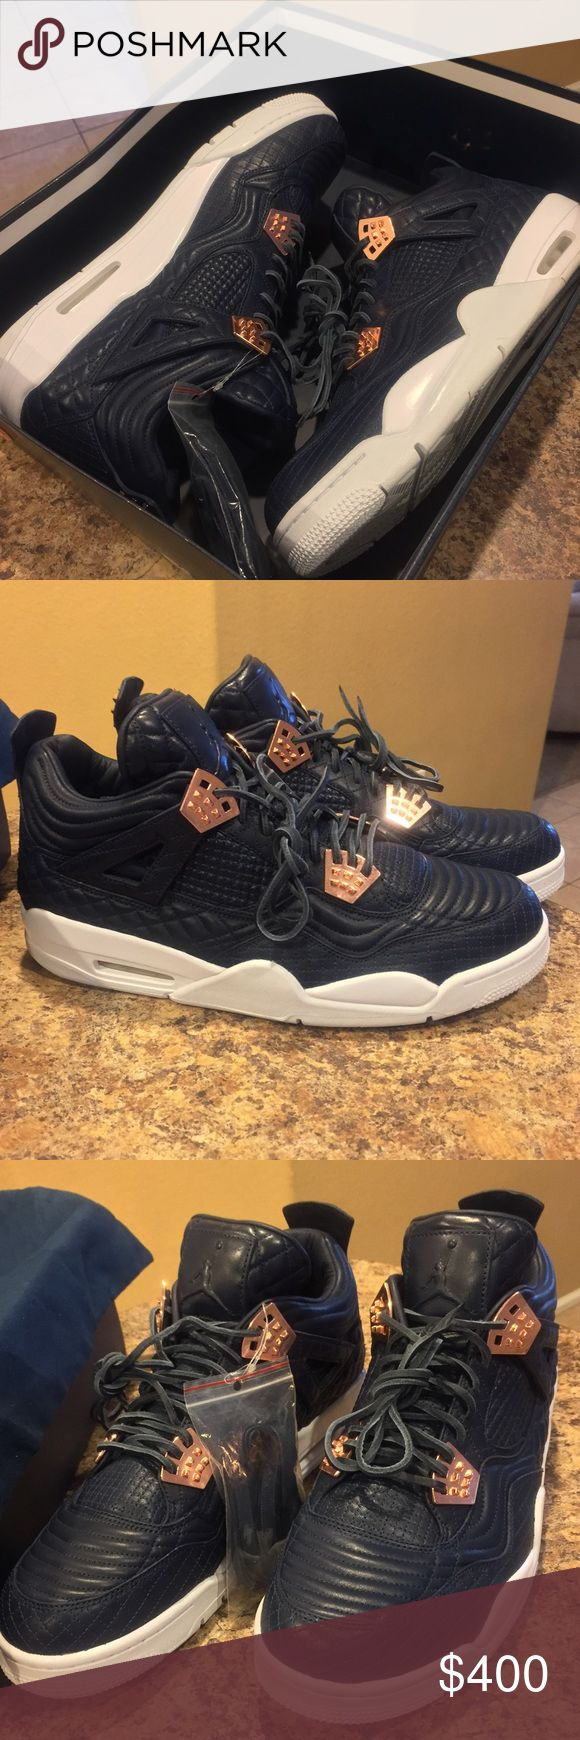 New! Jordan Retro 4 Premium size 14! This is a 100% authentic Jordan Retro 4 Premium in a men's size 14. Comes with box with no lid and no hang tag. Comes with dustbag and extra shoe laces. Serious buyers only! Jordan Shoes Athletic Shoes